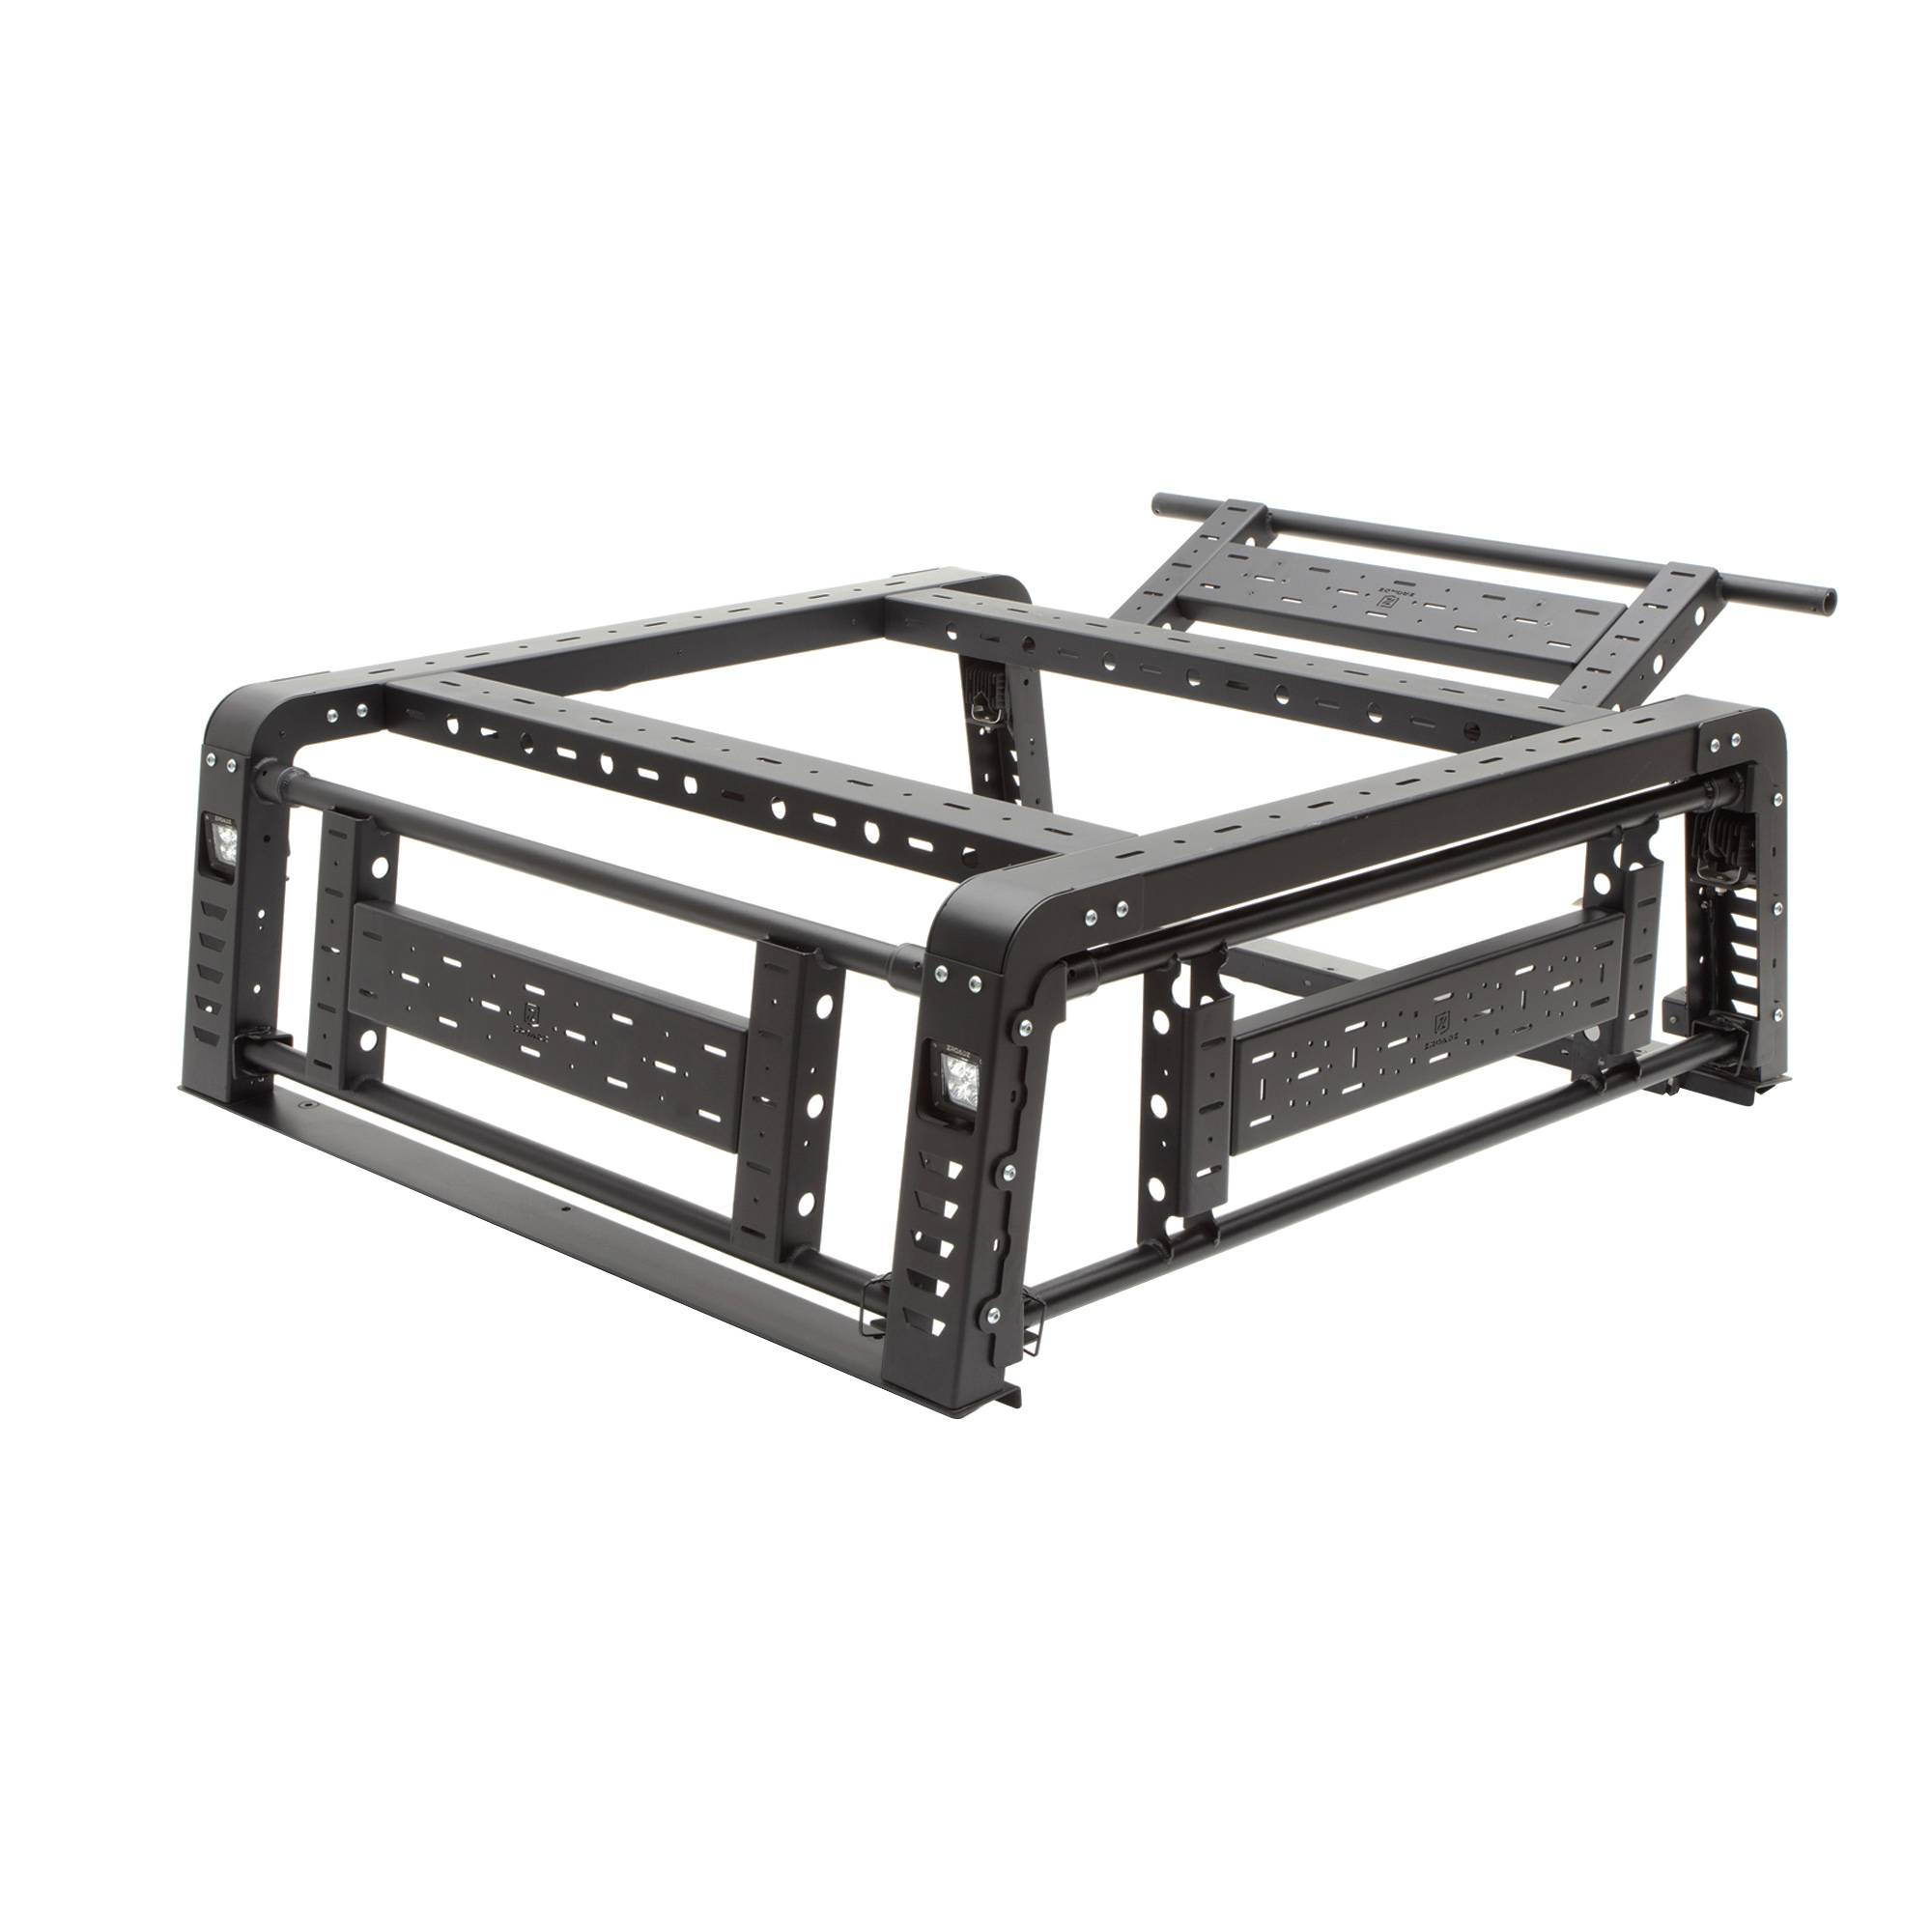 ZROADZ OFF ROAD PRODUCTS - 2019-2021 Ford Ranger Access Overland Rack With Three Lifting Side Gates - PN #Z835201